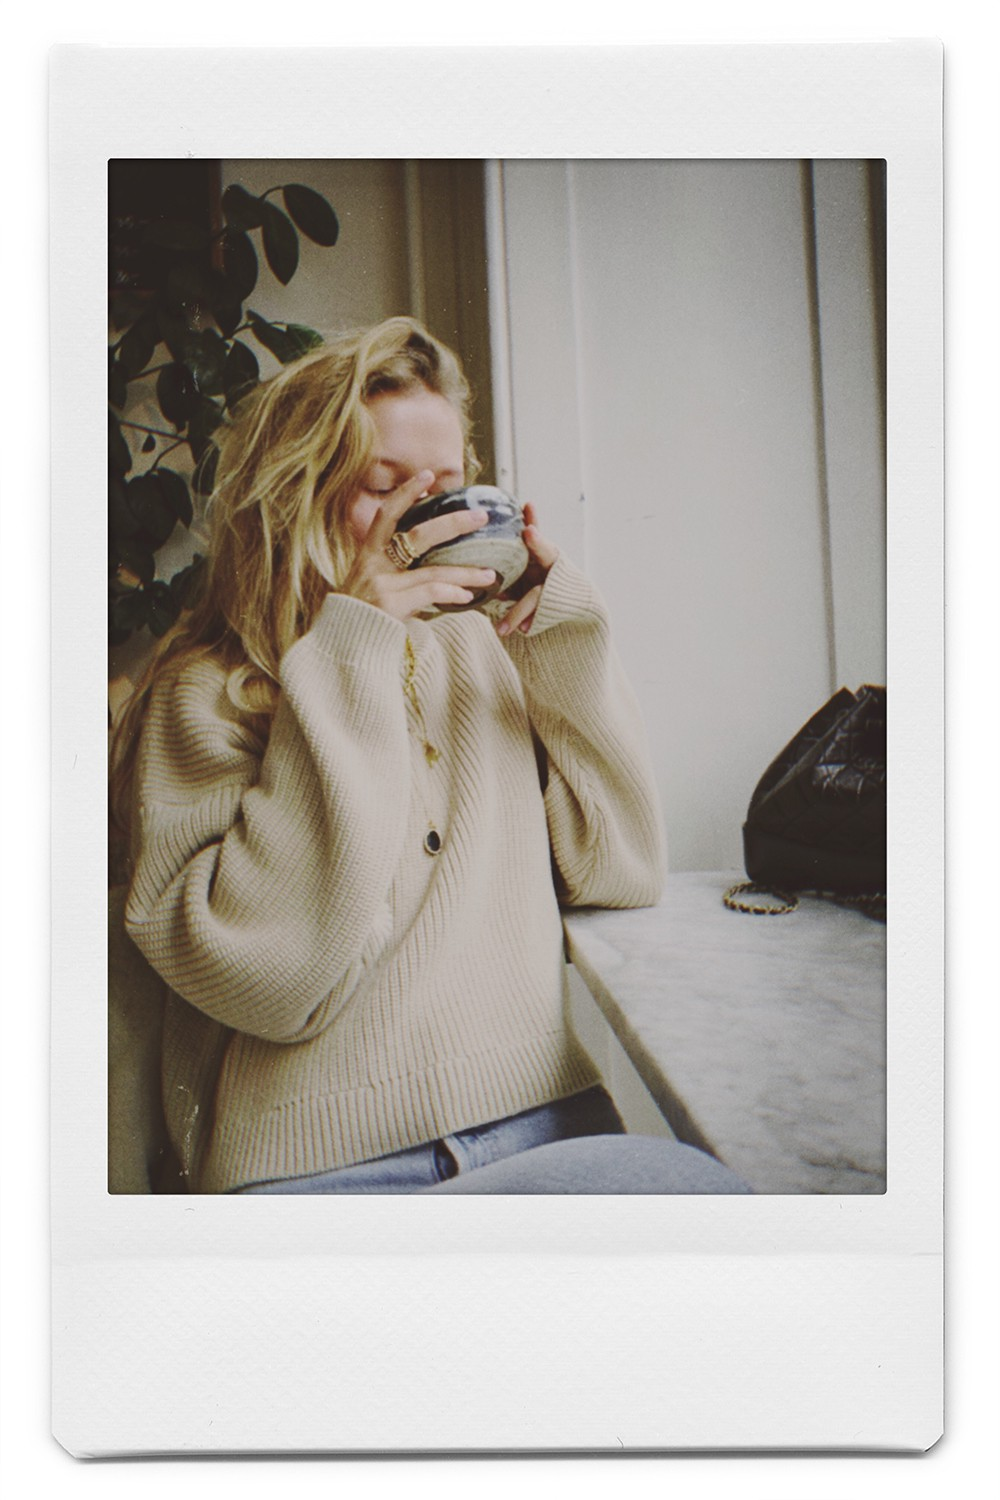 Film camera shot of an instagram model driking coffee